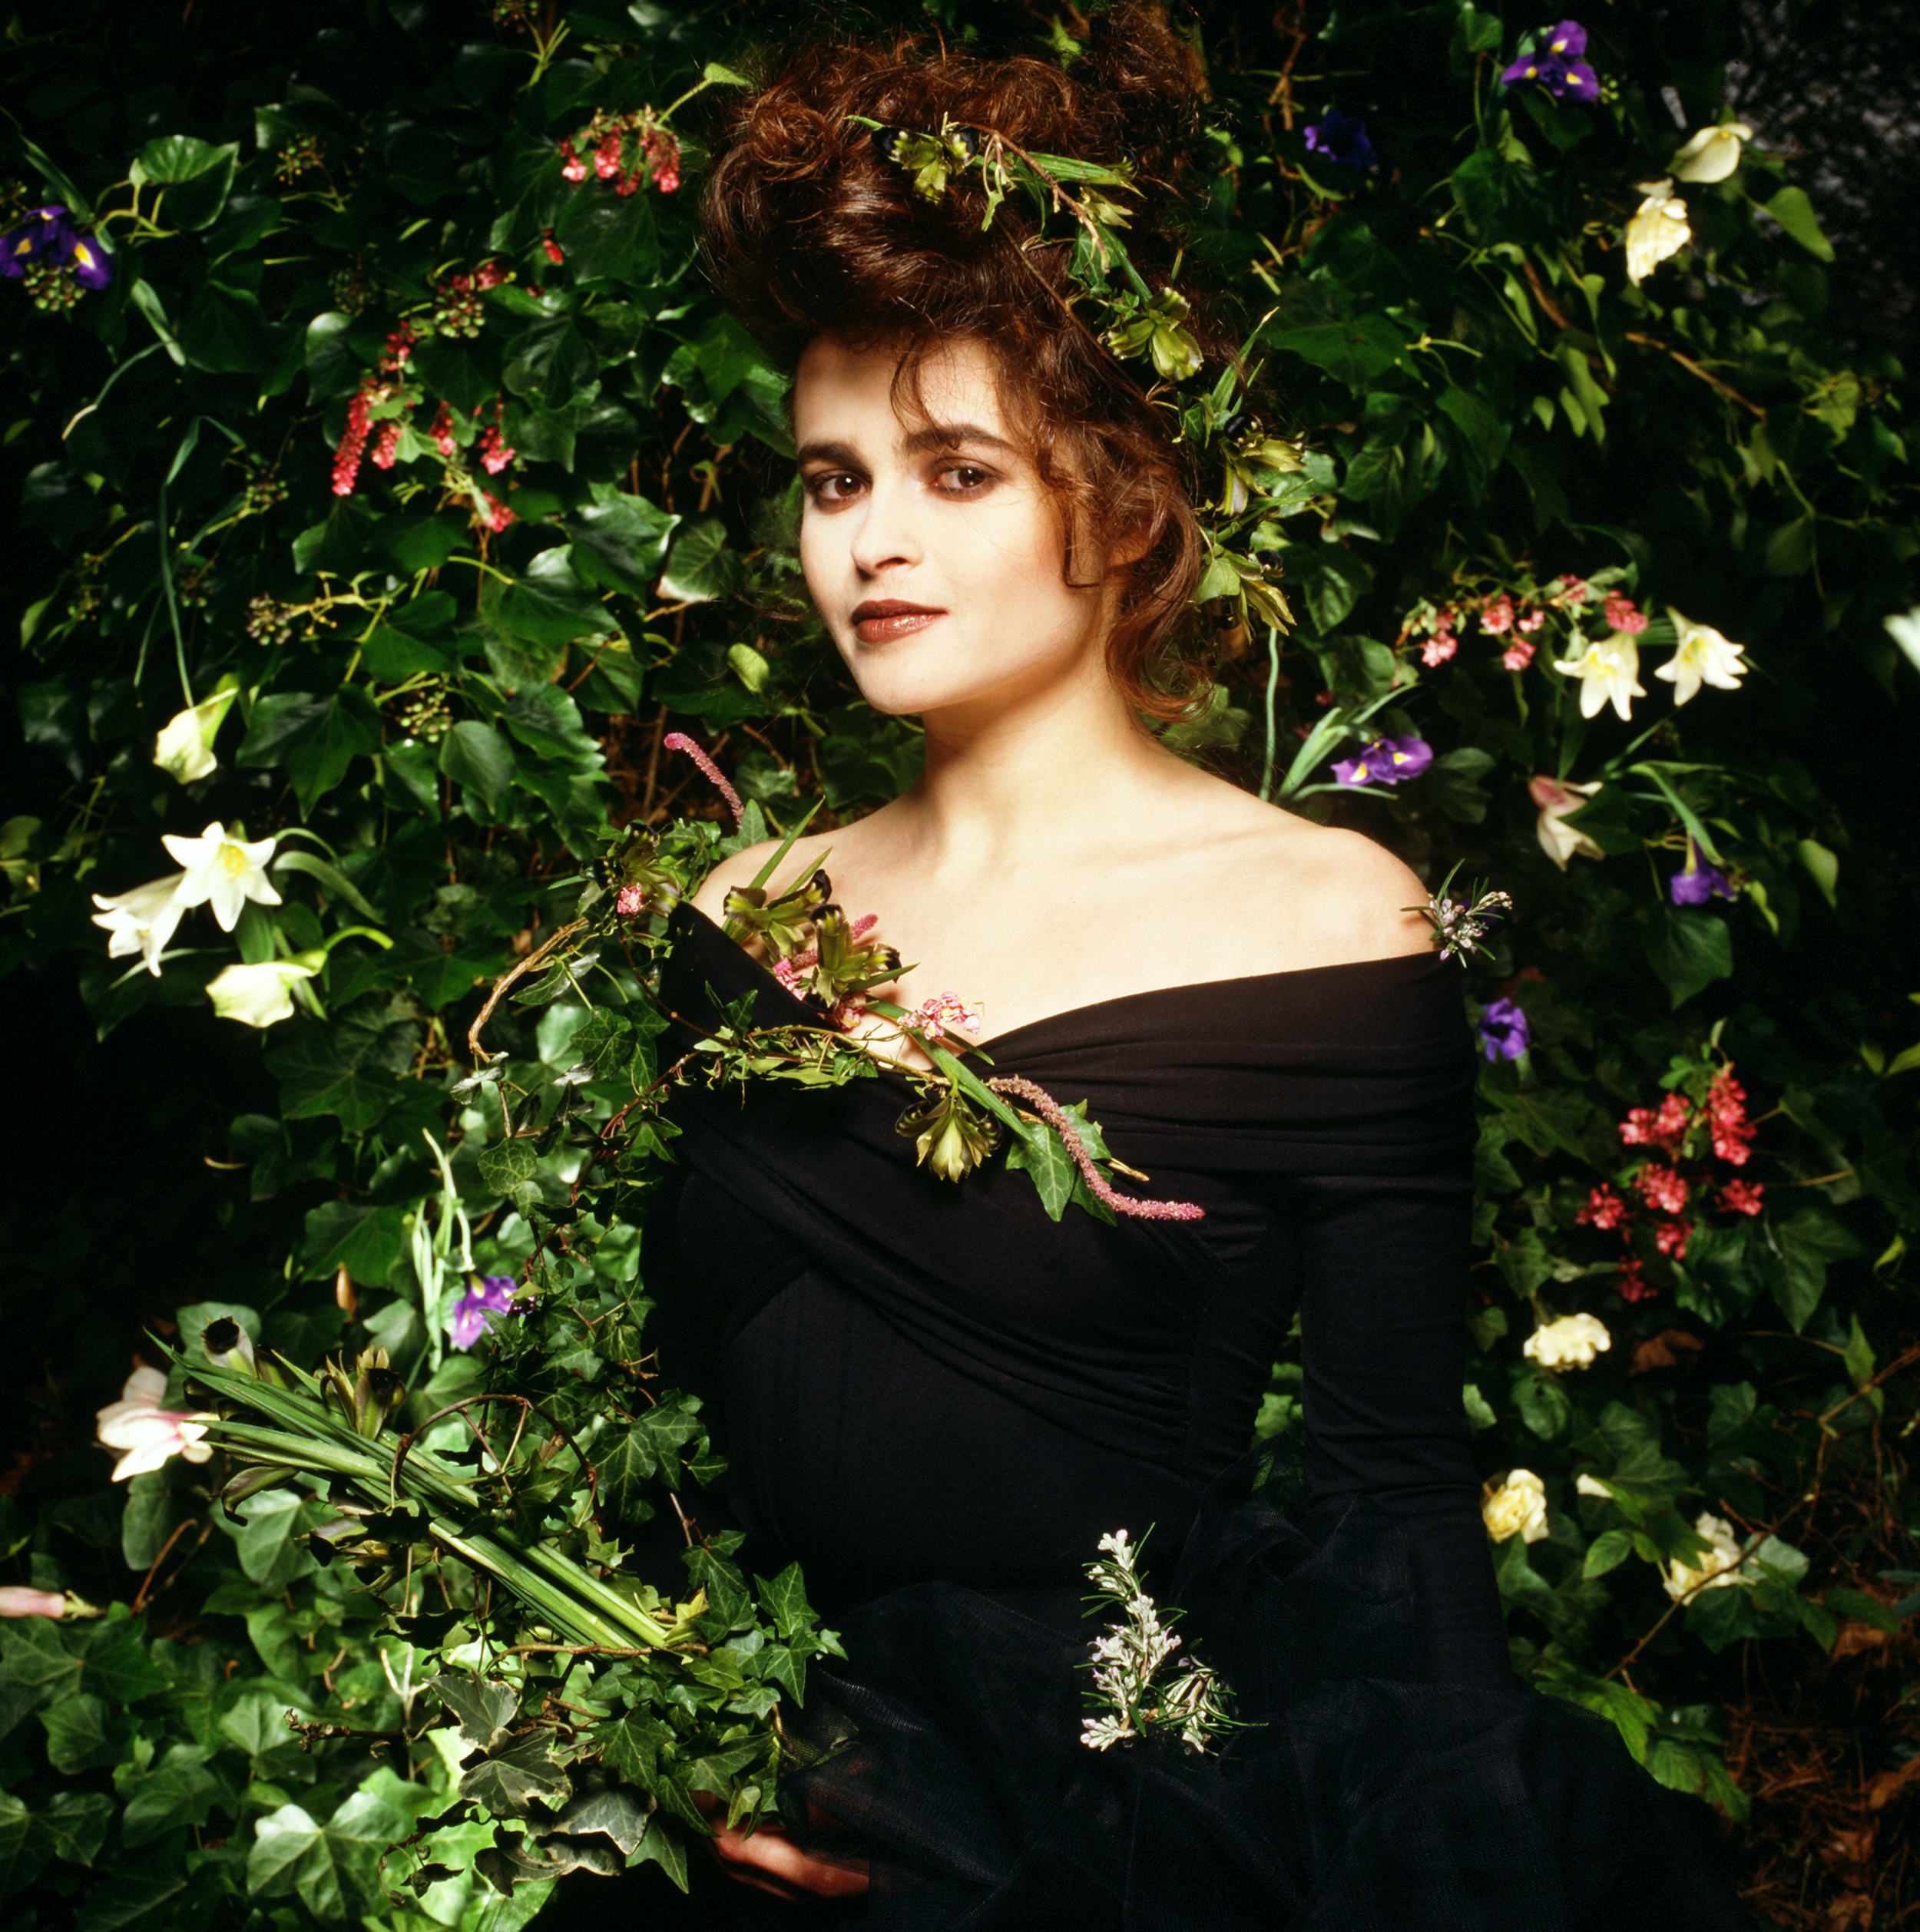 Helena Bonham Carter by Terry O`Neill  Ed 50, C Print  Available in several sizes  Price on request